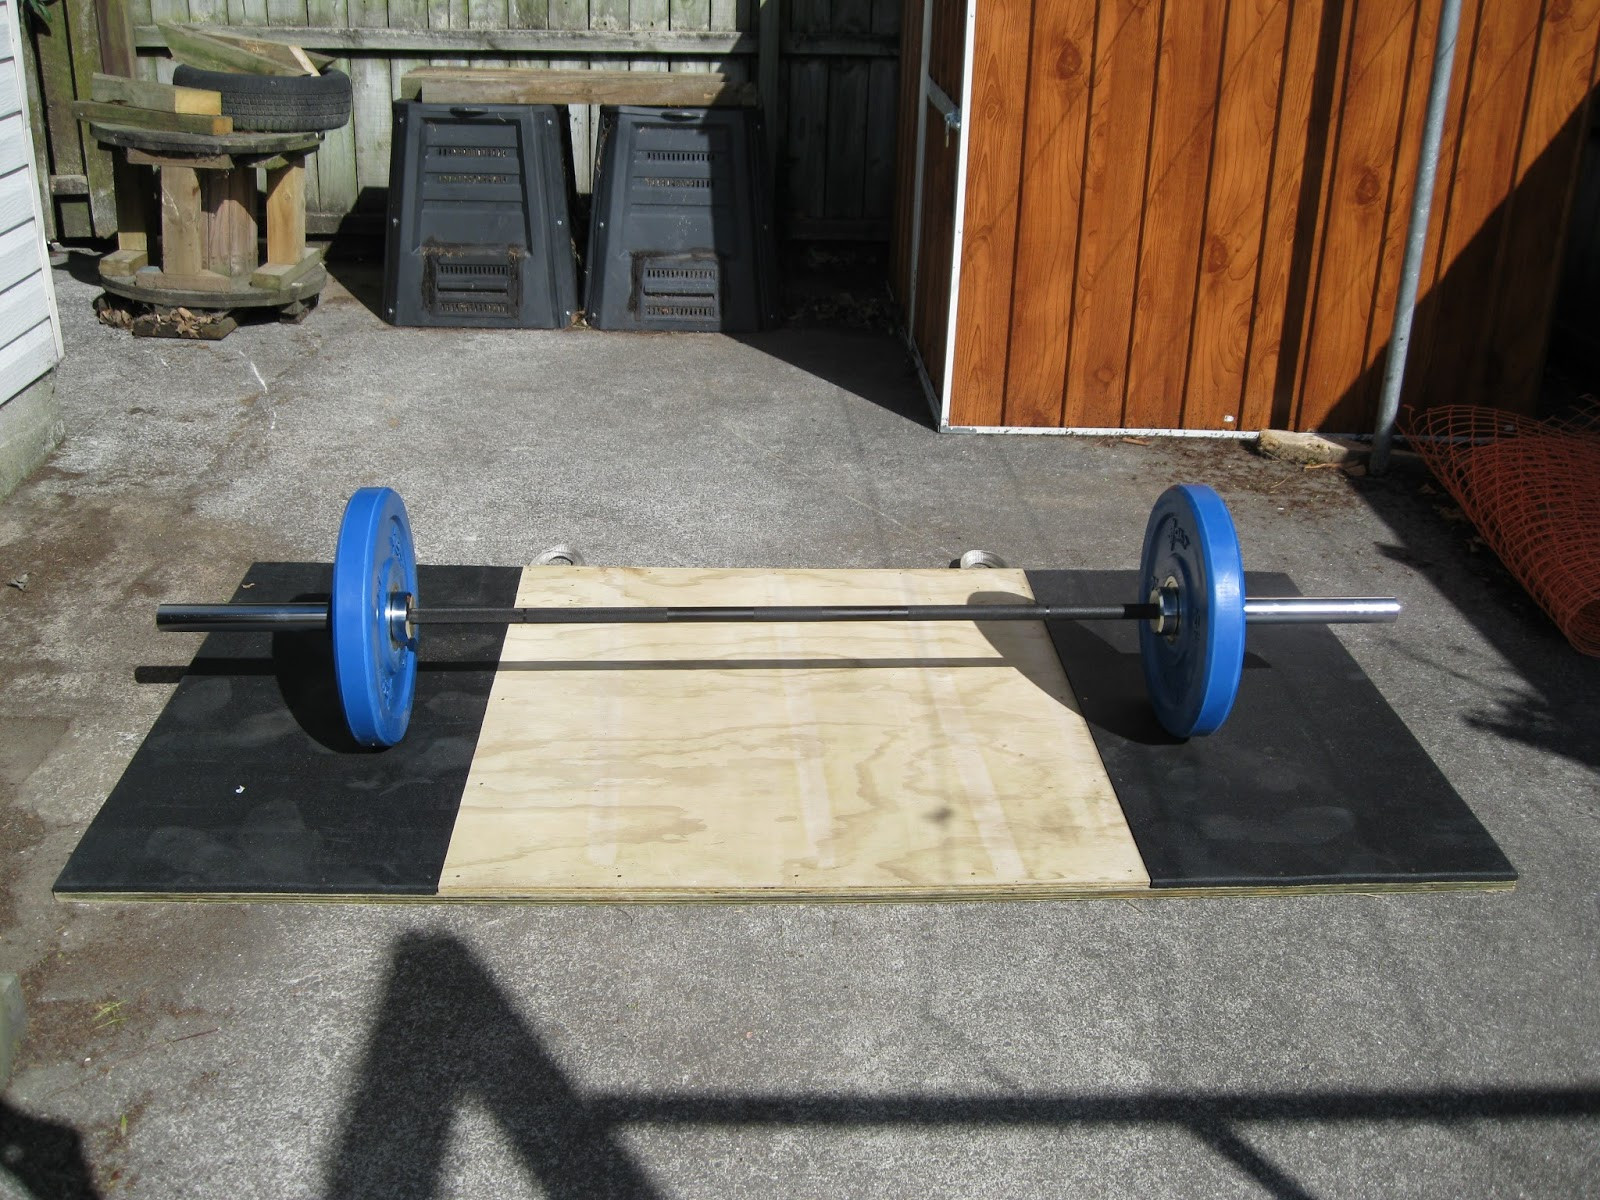 Best ideas about DIY Lifting Platform . Save or Pin Back To Primal Homemade lifting platform Now.